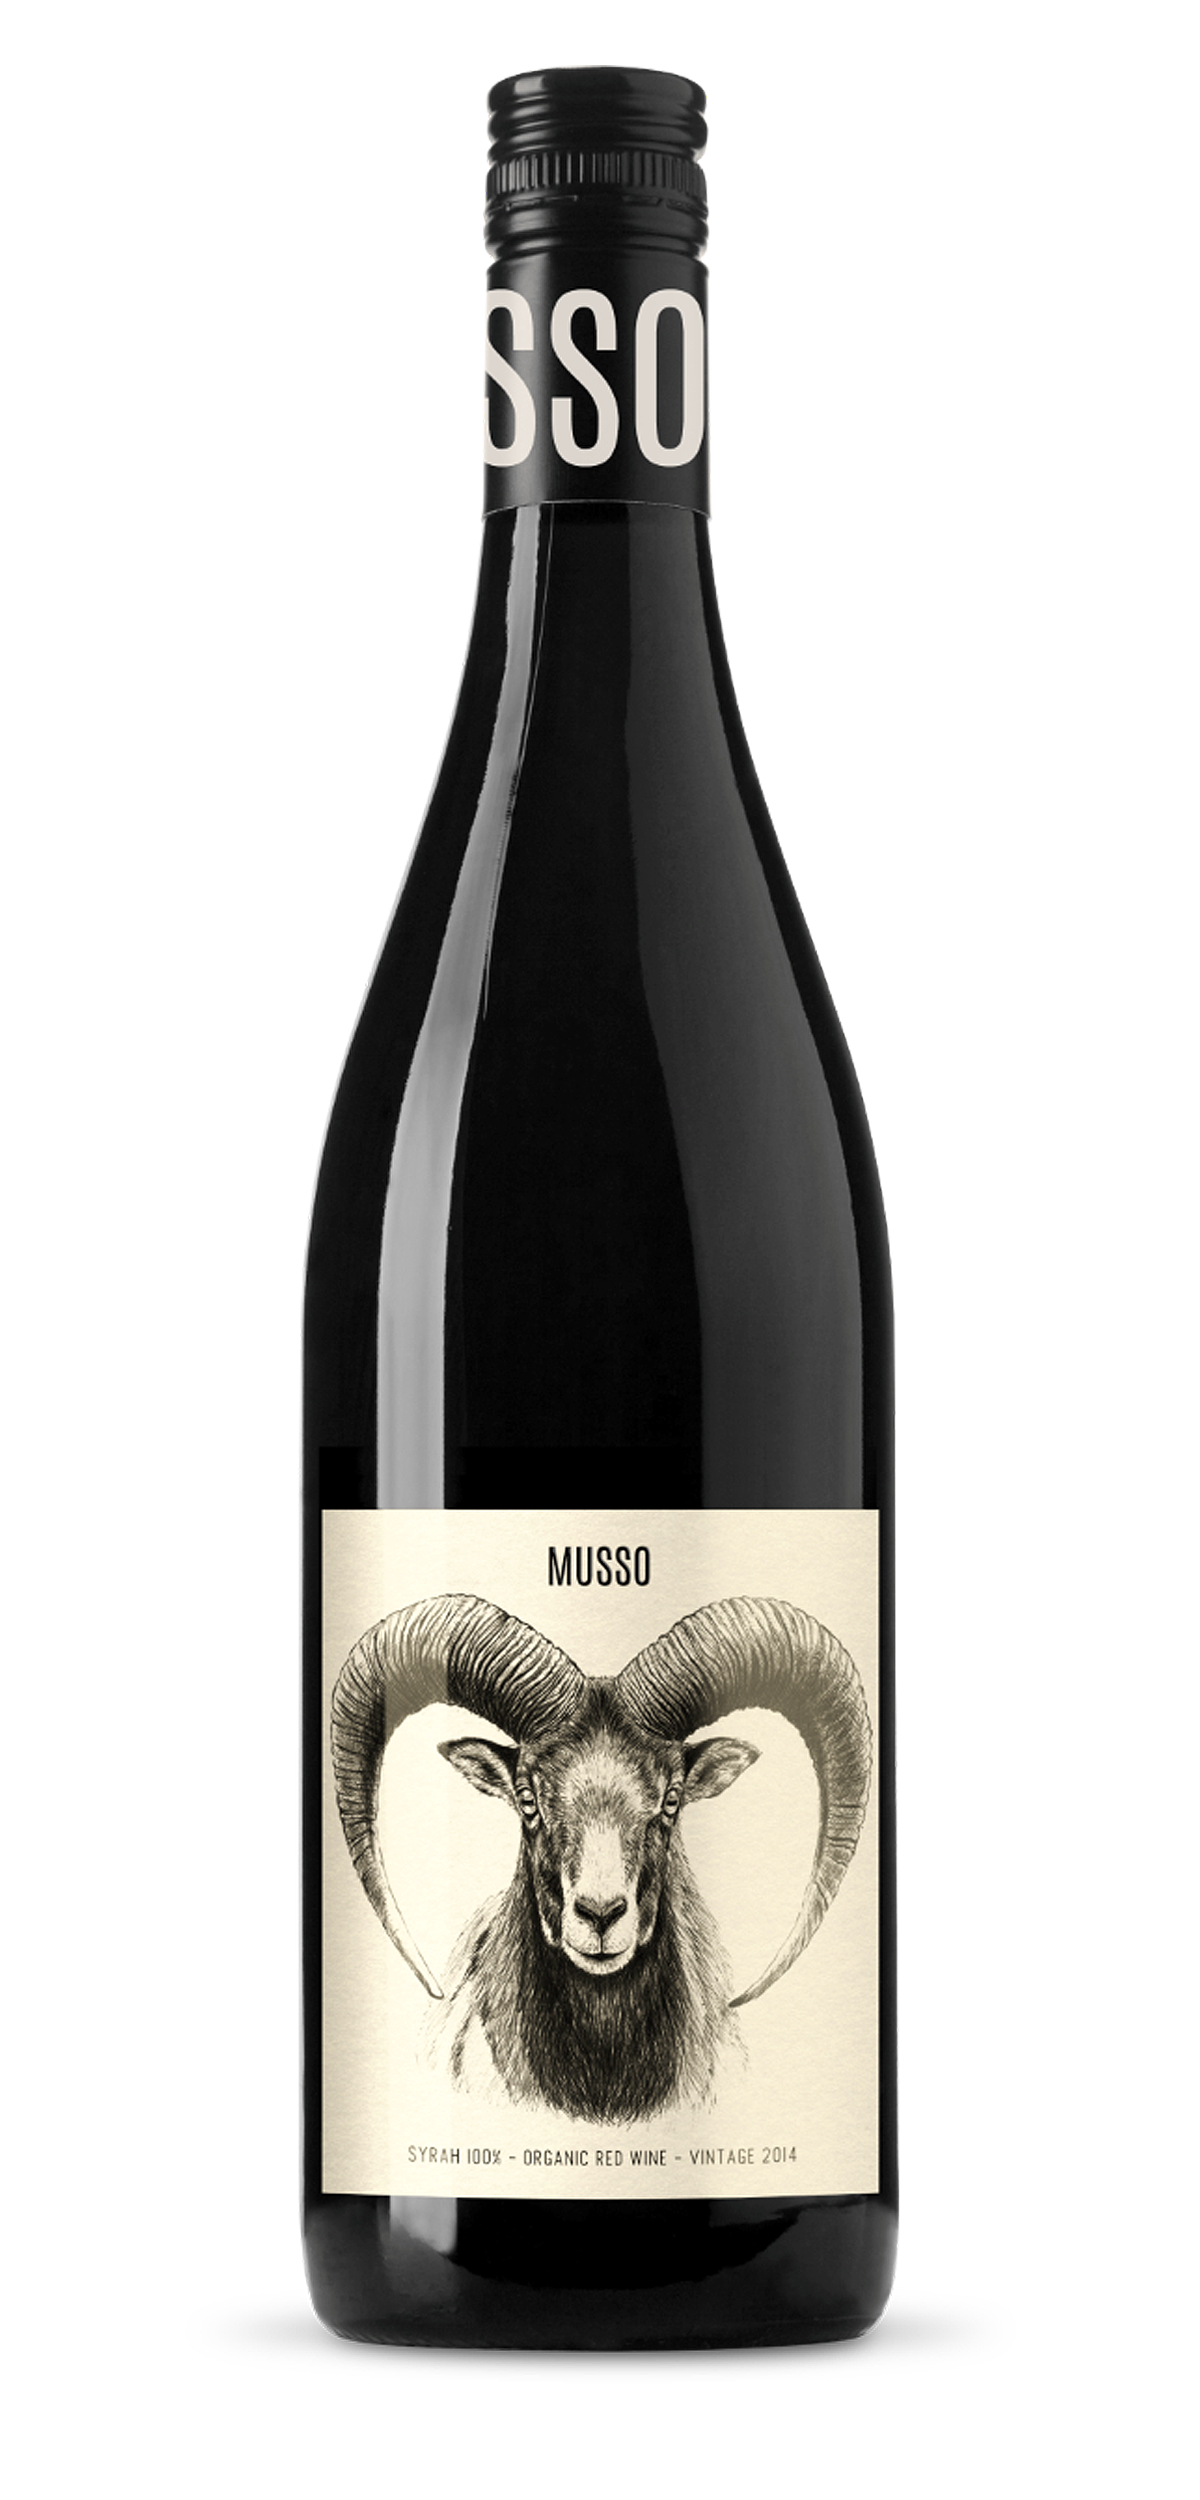 MUSSO Syrah wine bottle design